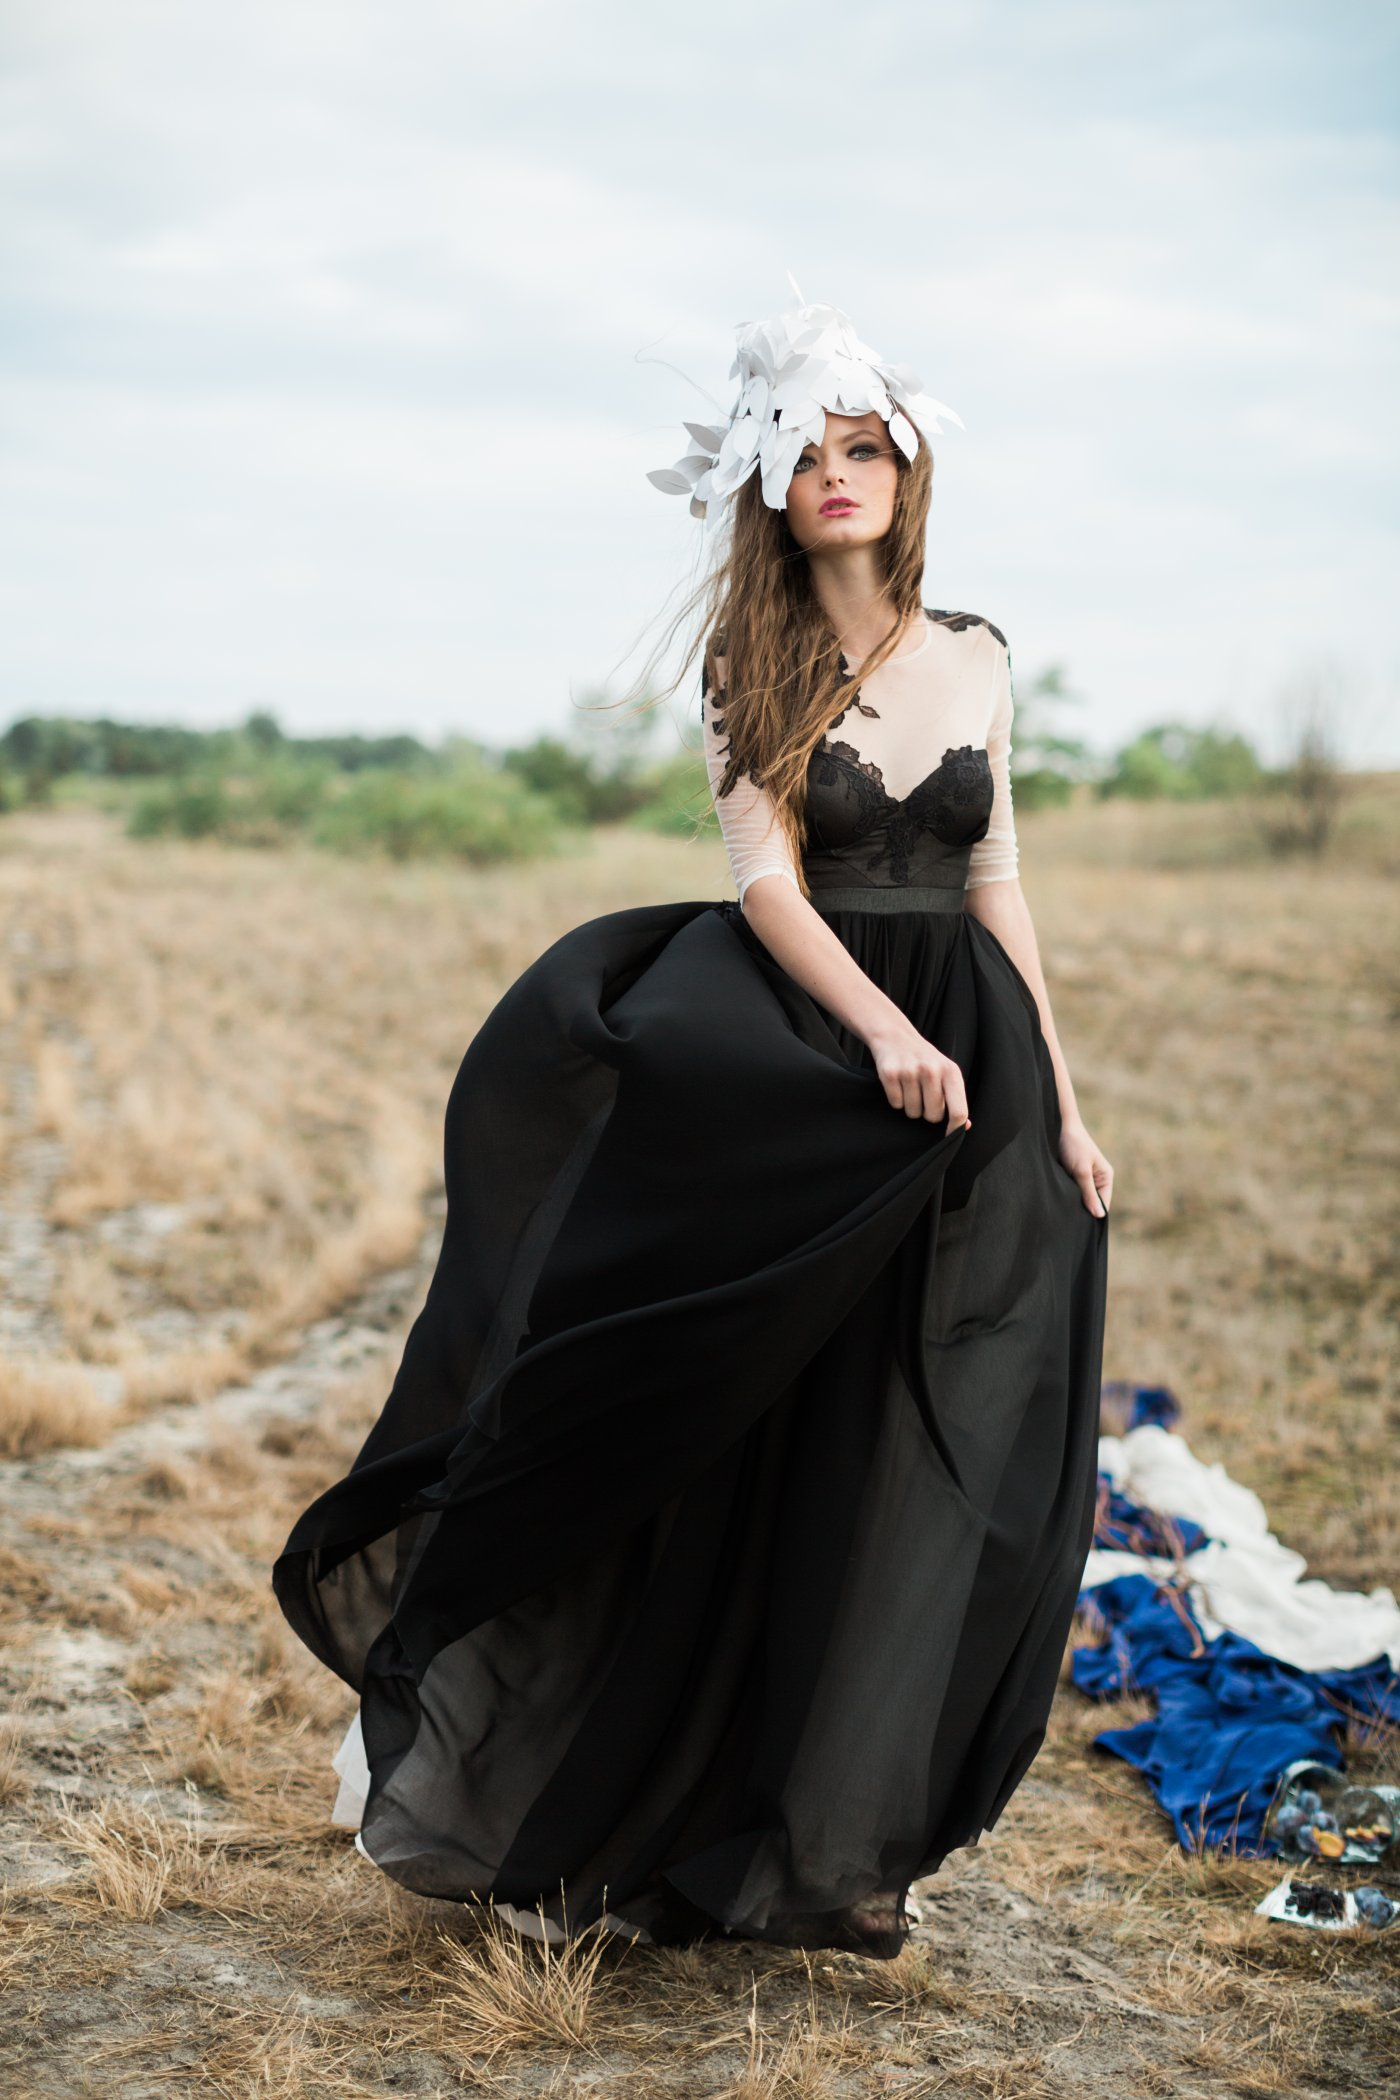 Black Wedding Gown.Black Wedding Dress With Sheer Elbow Sleeve And Floral Lace Appliques